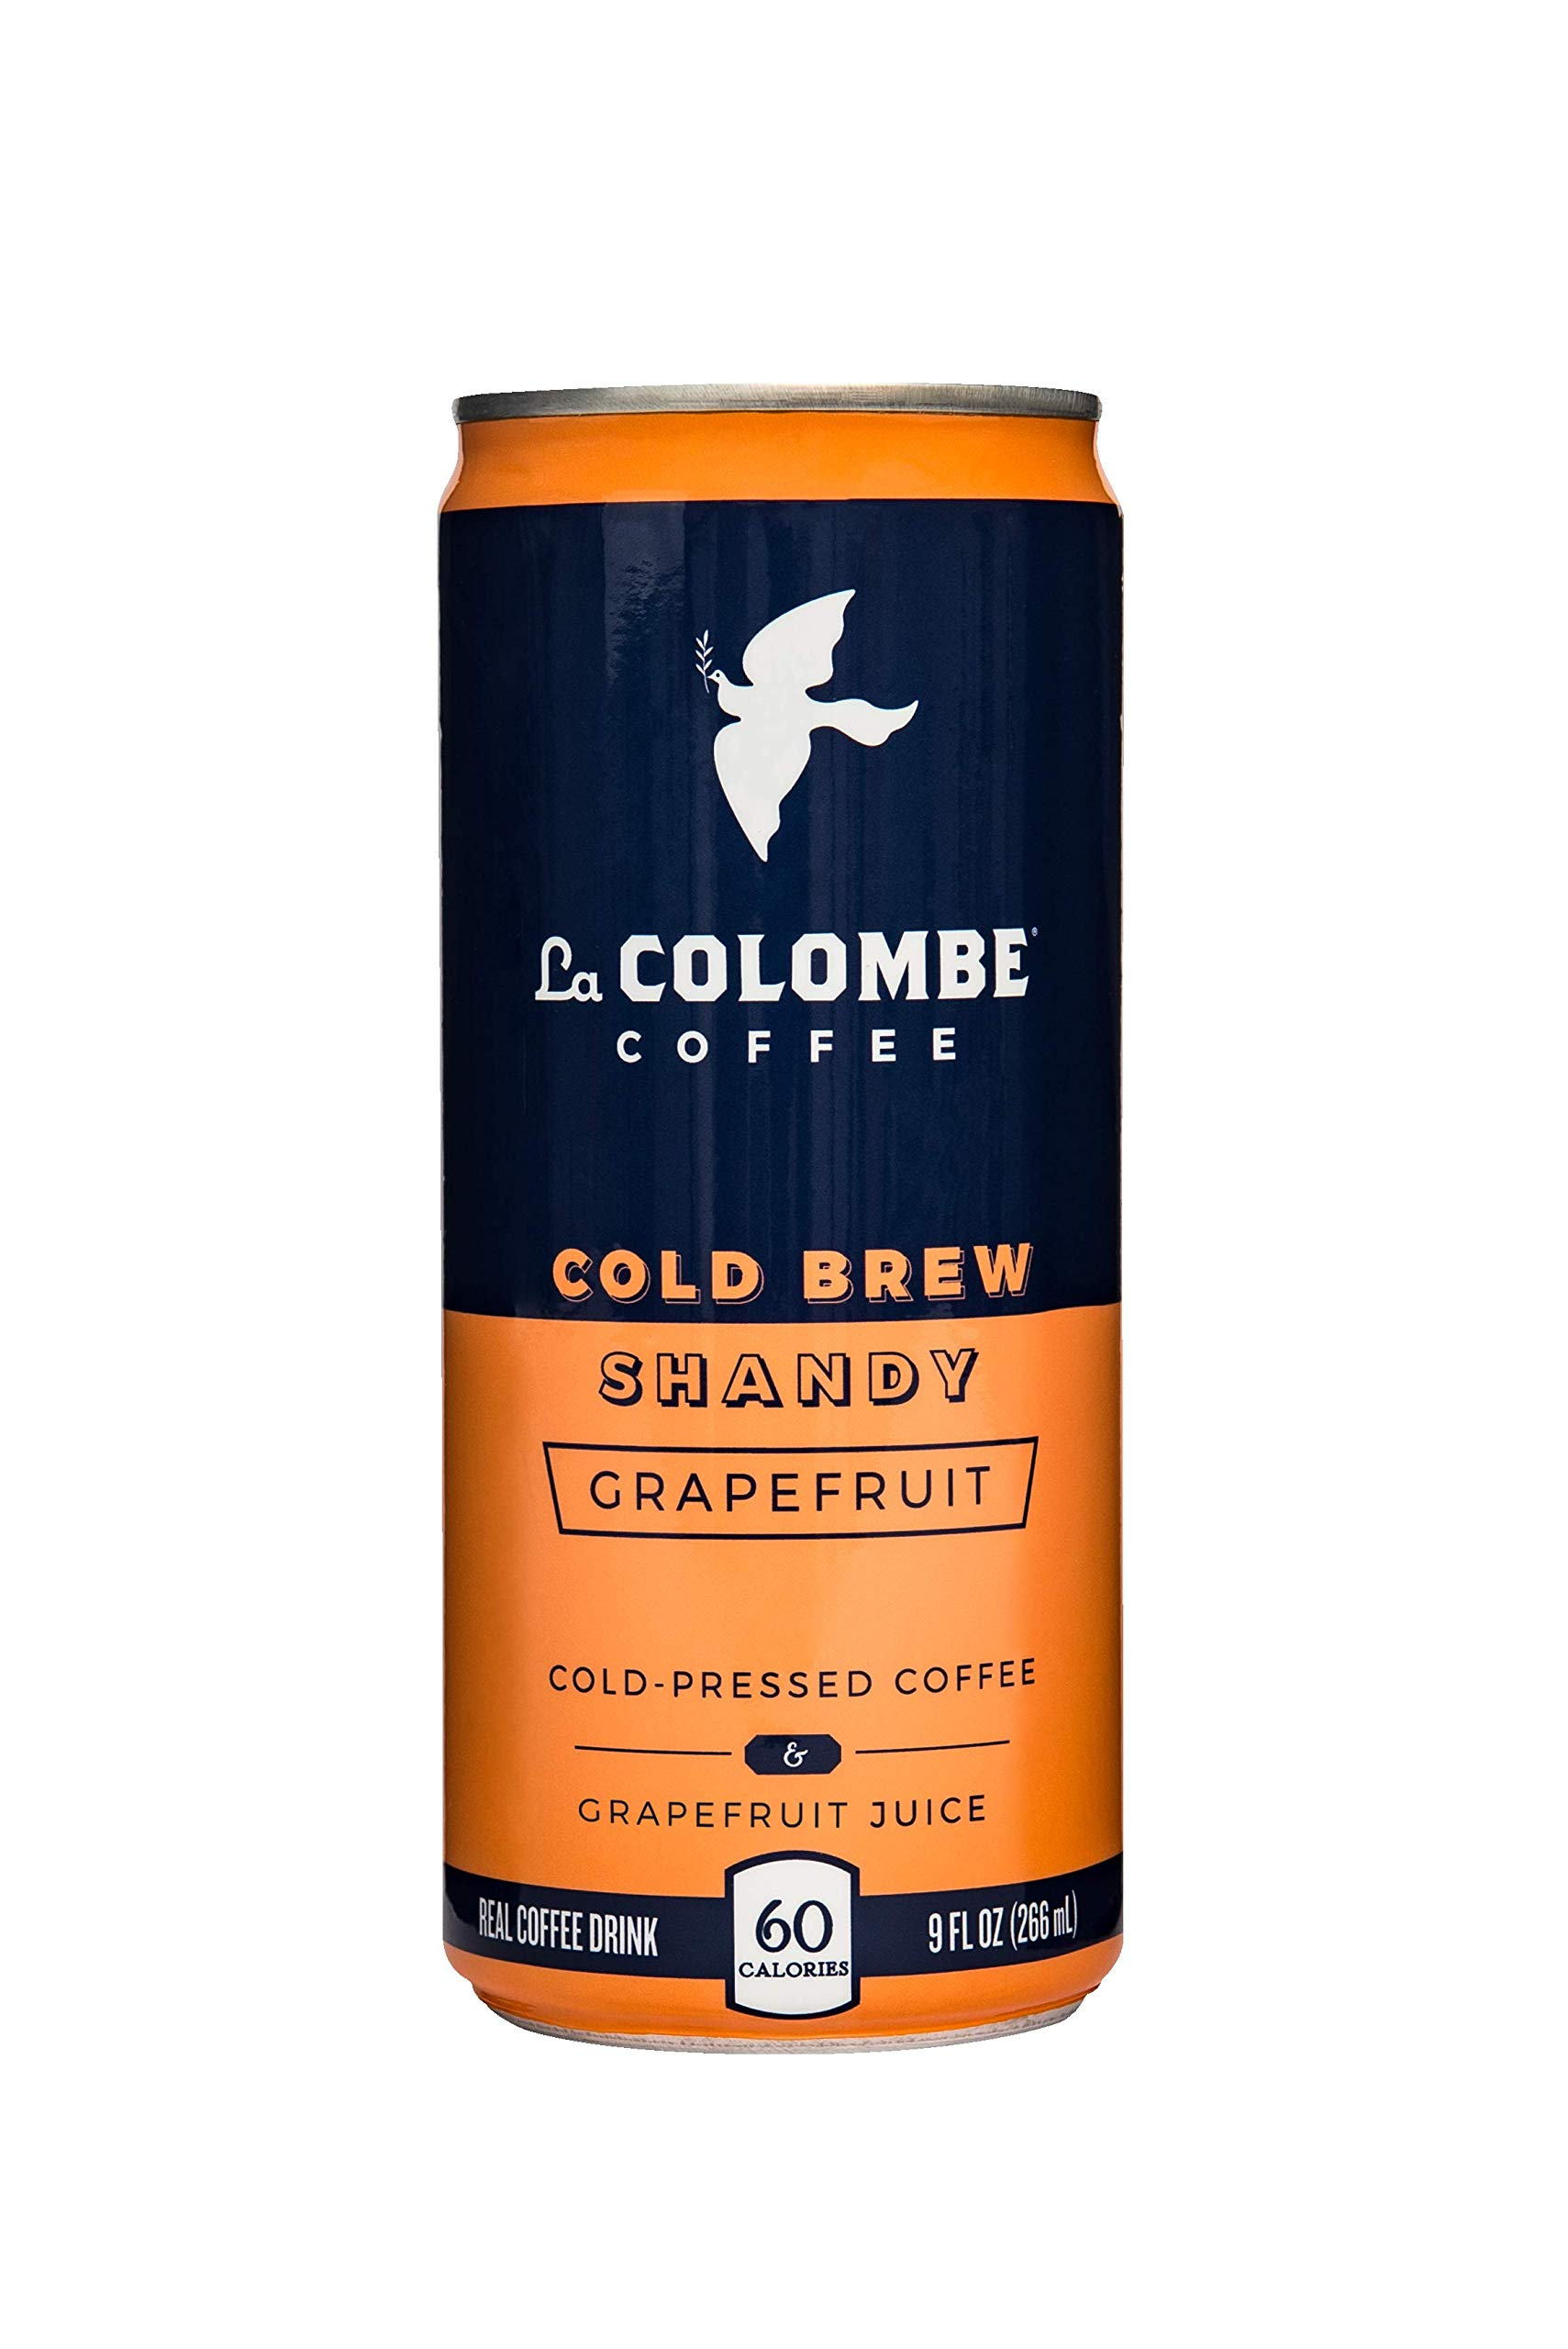 La Colombe Grapefruit Shandy - 9 Fluid Ounce, 16 Pack - Cold-Pressed Espresso and Grapefruit Juice - Made With Real Ingredients - Grab and Go Coffee